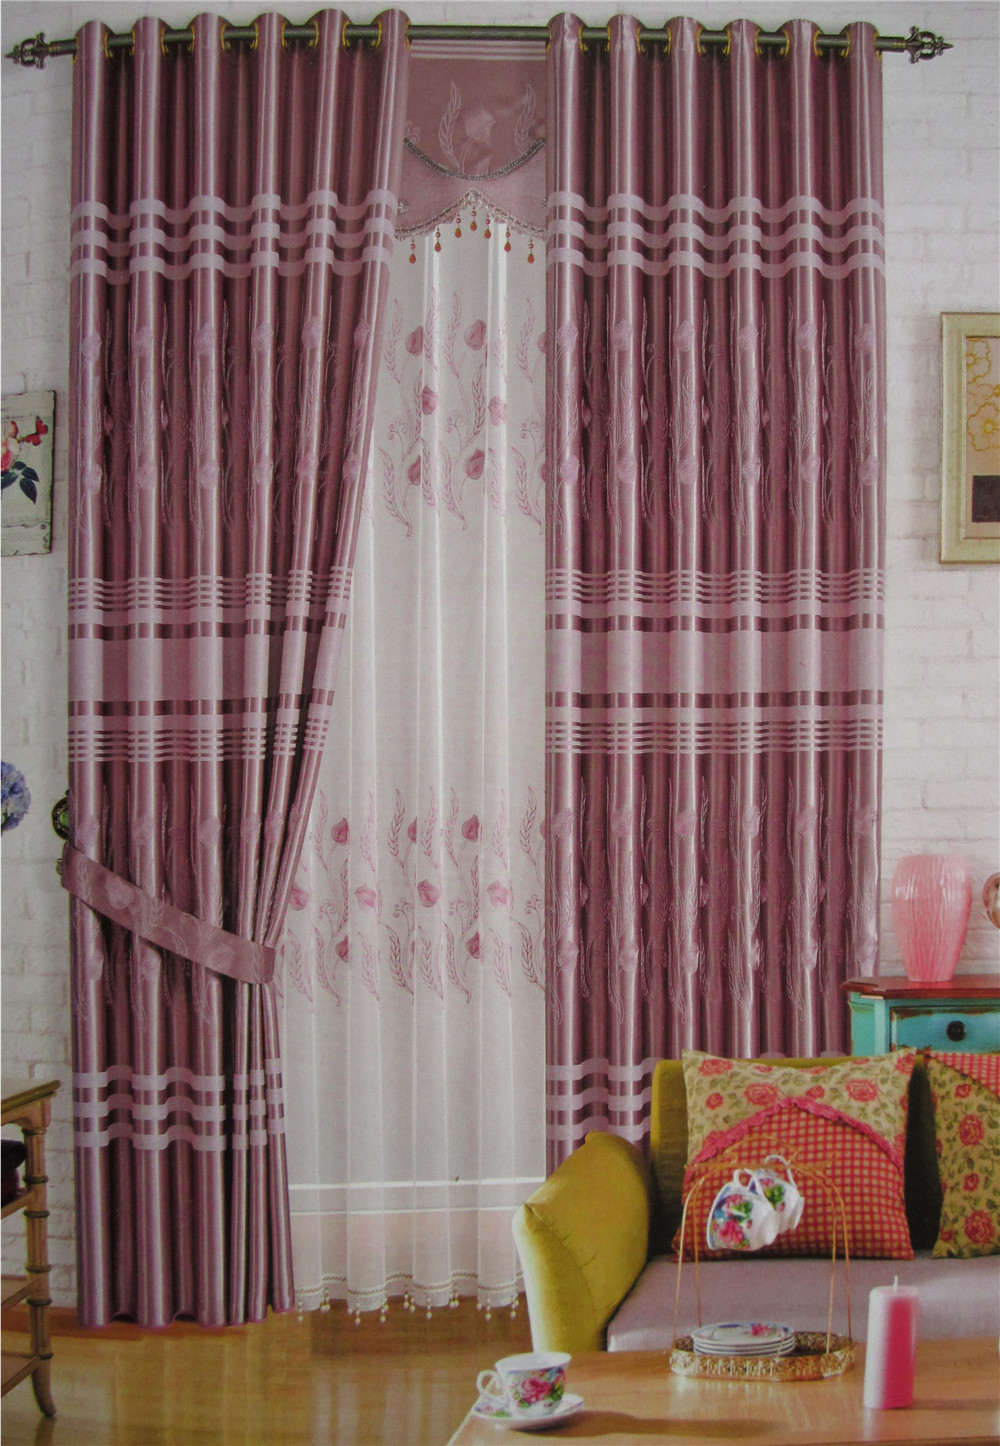 Living room curtains bedroom curtains L009127 Curtain custom made ready made curtains for widows Free Shipping(China (Mainland))